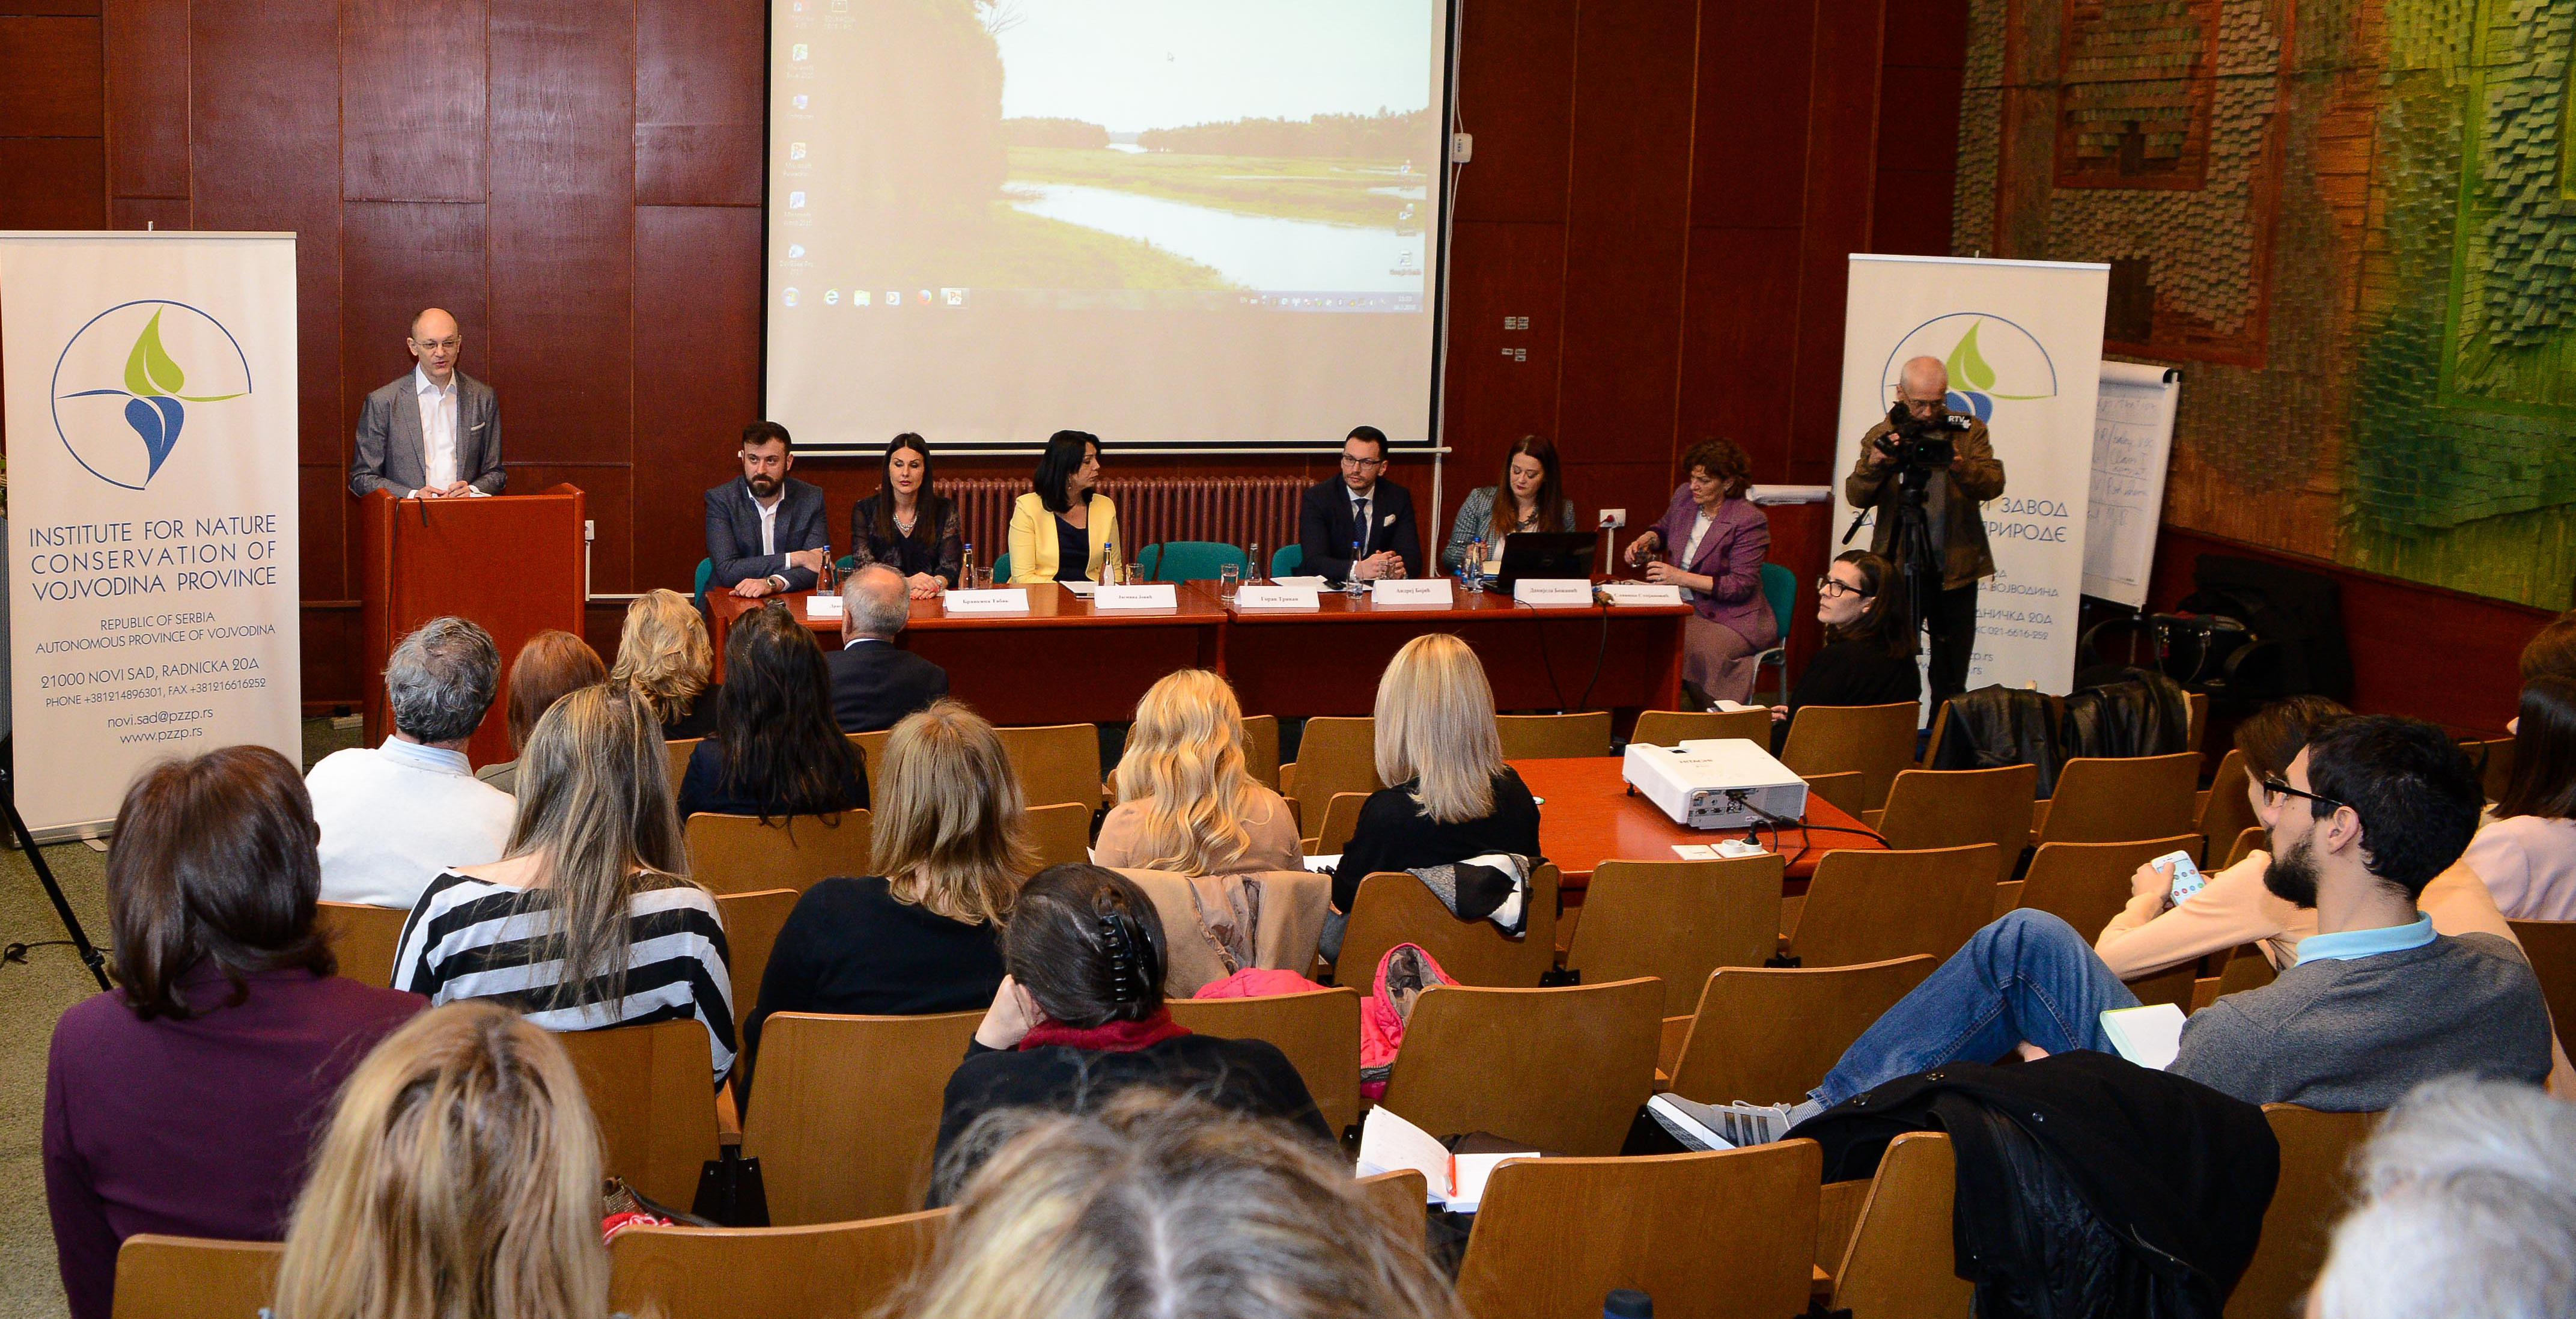 Public debate on Draft Law on Climate Change launched